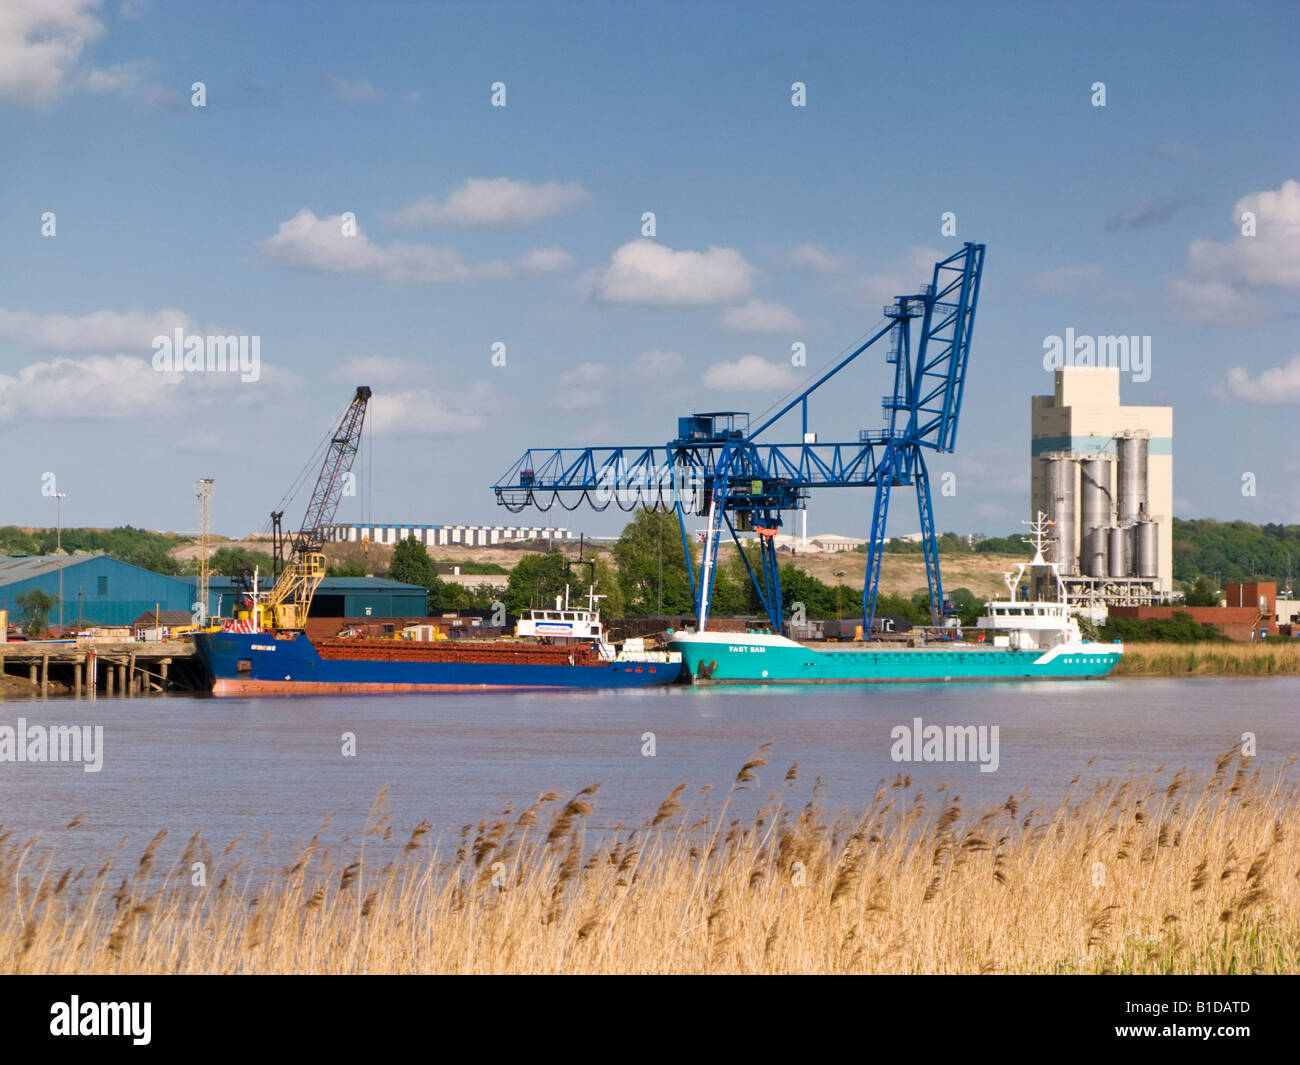 Flixborough Wharf Steel Terminal on the River Trent at Flixborough, North Lincolnshire, UK Stock Photo